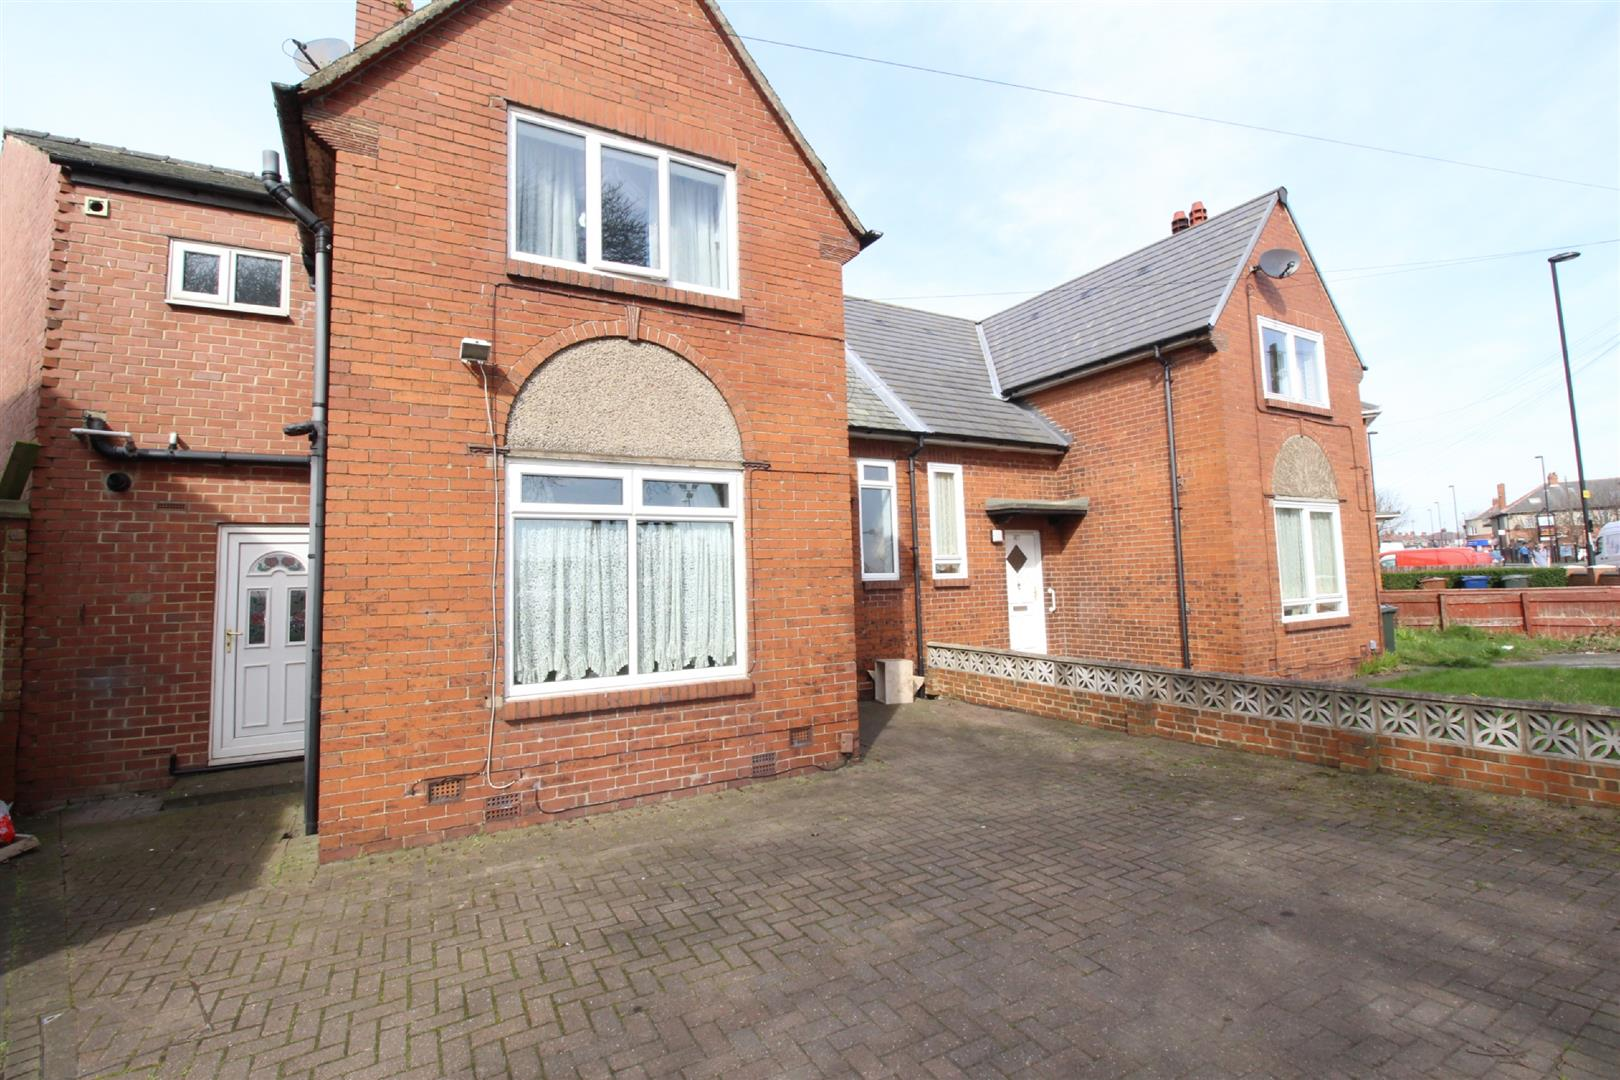 Bedroom semi detached house for sale in newcastle upon tyne